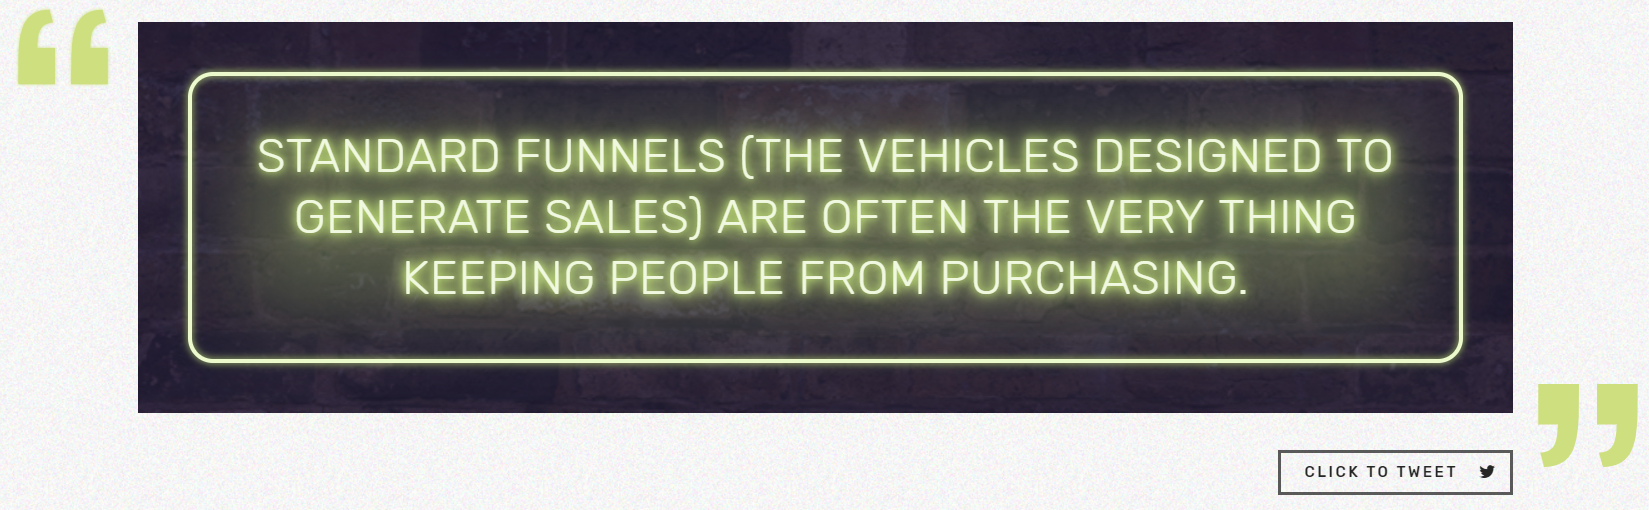 "screenshot of quote ""Standard funnels (the vehicles designed to generate sales) are often the very thing keeping people from purchasing."""